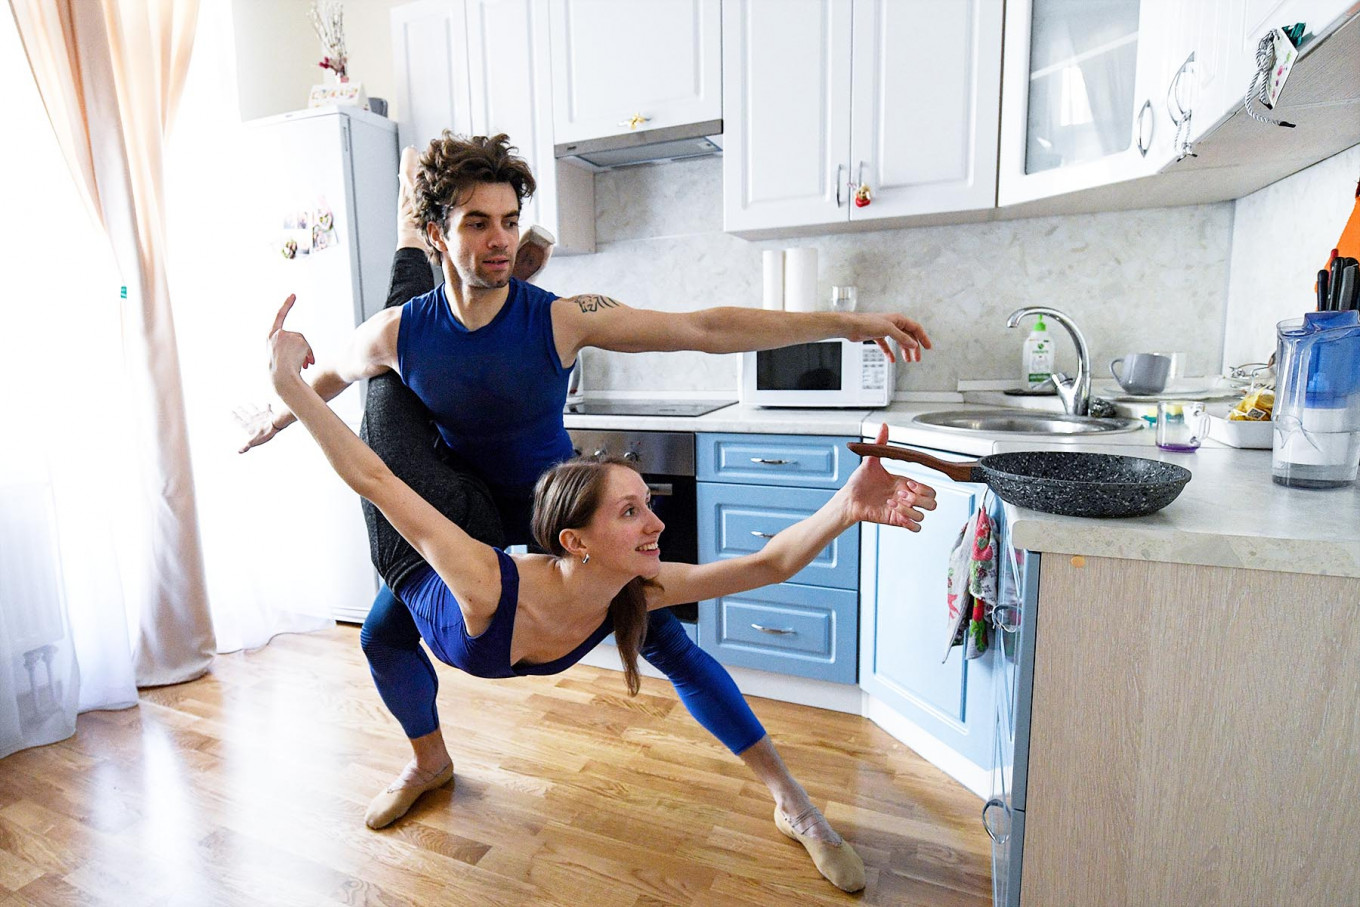 Bolshoi theatre leading soloist Igor Tsvirko and first soloist Margarita Shrainer attend a lesson in the kitchen of their apartment in Moscow on April 29, 2020 during a strict lockdown in Russia to stop the spread of the COVID-19 infection caused by the novel coronavirus. - In the middle of their bedroom, Bolshoi ballet dancers Margarita Shrainer and Igor Tsvirko have placed a linoleum mat and a barre. Since the start of the lockdown, the couple, both soloists in the legendary troupe, have largely used their own initiative to keep up their dance skills at home. AFP/Kirill Kudryavtsev